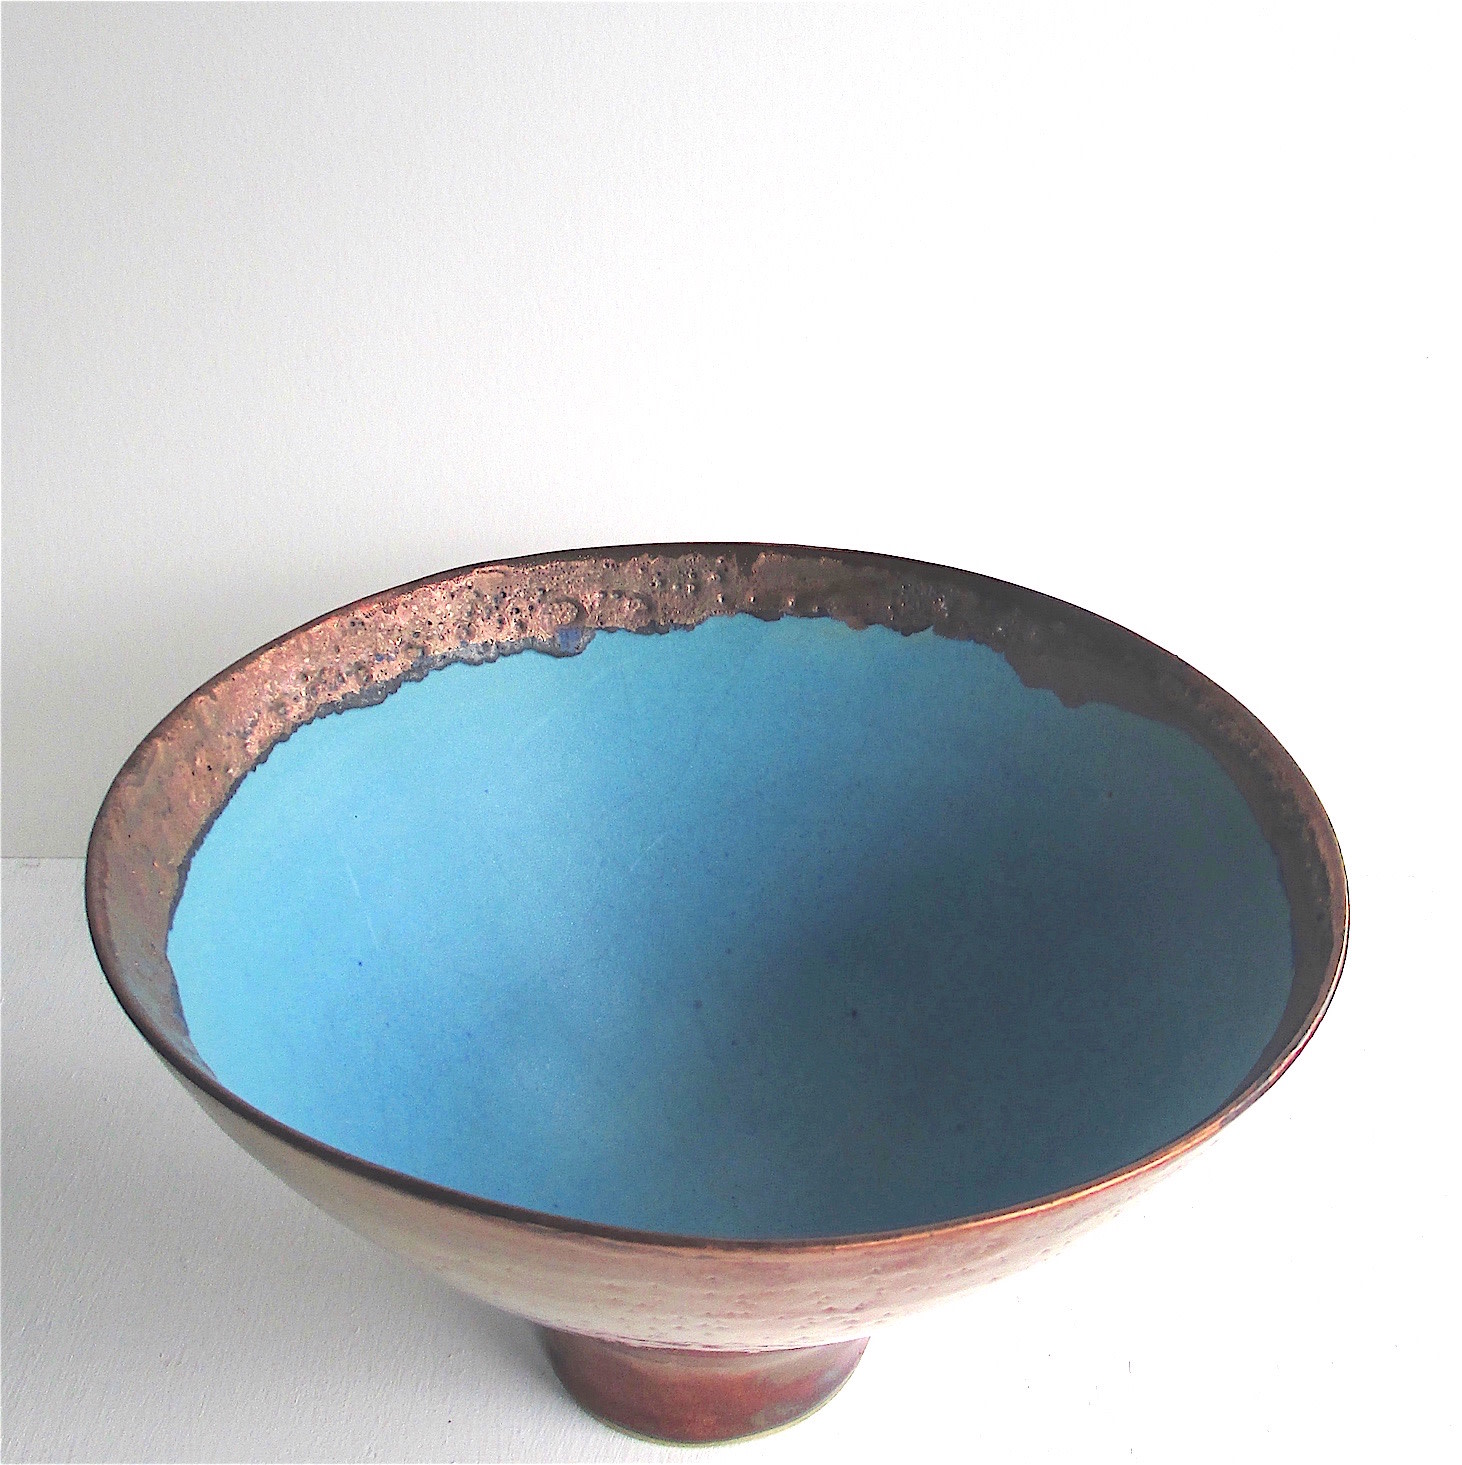 "<span class=""link fancybox-details-link""><a href=""/artists/44-sarah-perry/works/7450-sarah-perry-copper-lustred-turquoise-bowl-2020/"">View Detail Page</a></span><div class=""artist""><strong>Sarah Perry</strong></div> b. 1945 <div class=""title""><em>Copper Lustred Turquoise Bowl</em>, 2020</div> <div class=""signed_and_dated"">impressed with the artist's seal 'SP'</div> <div class=""medium"">stoneware</div> <div class=""dimensions"">h 14 x dia 23 cm</div><div class=""price"">£352.00</div><div class=""copyright_line"">Own Art: £35.20 x 10 months, 0% APR</div>"